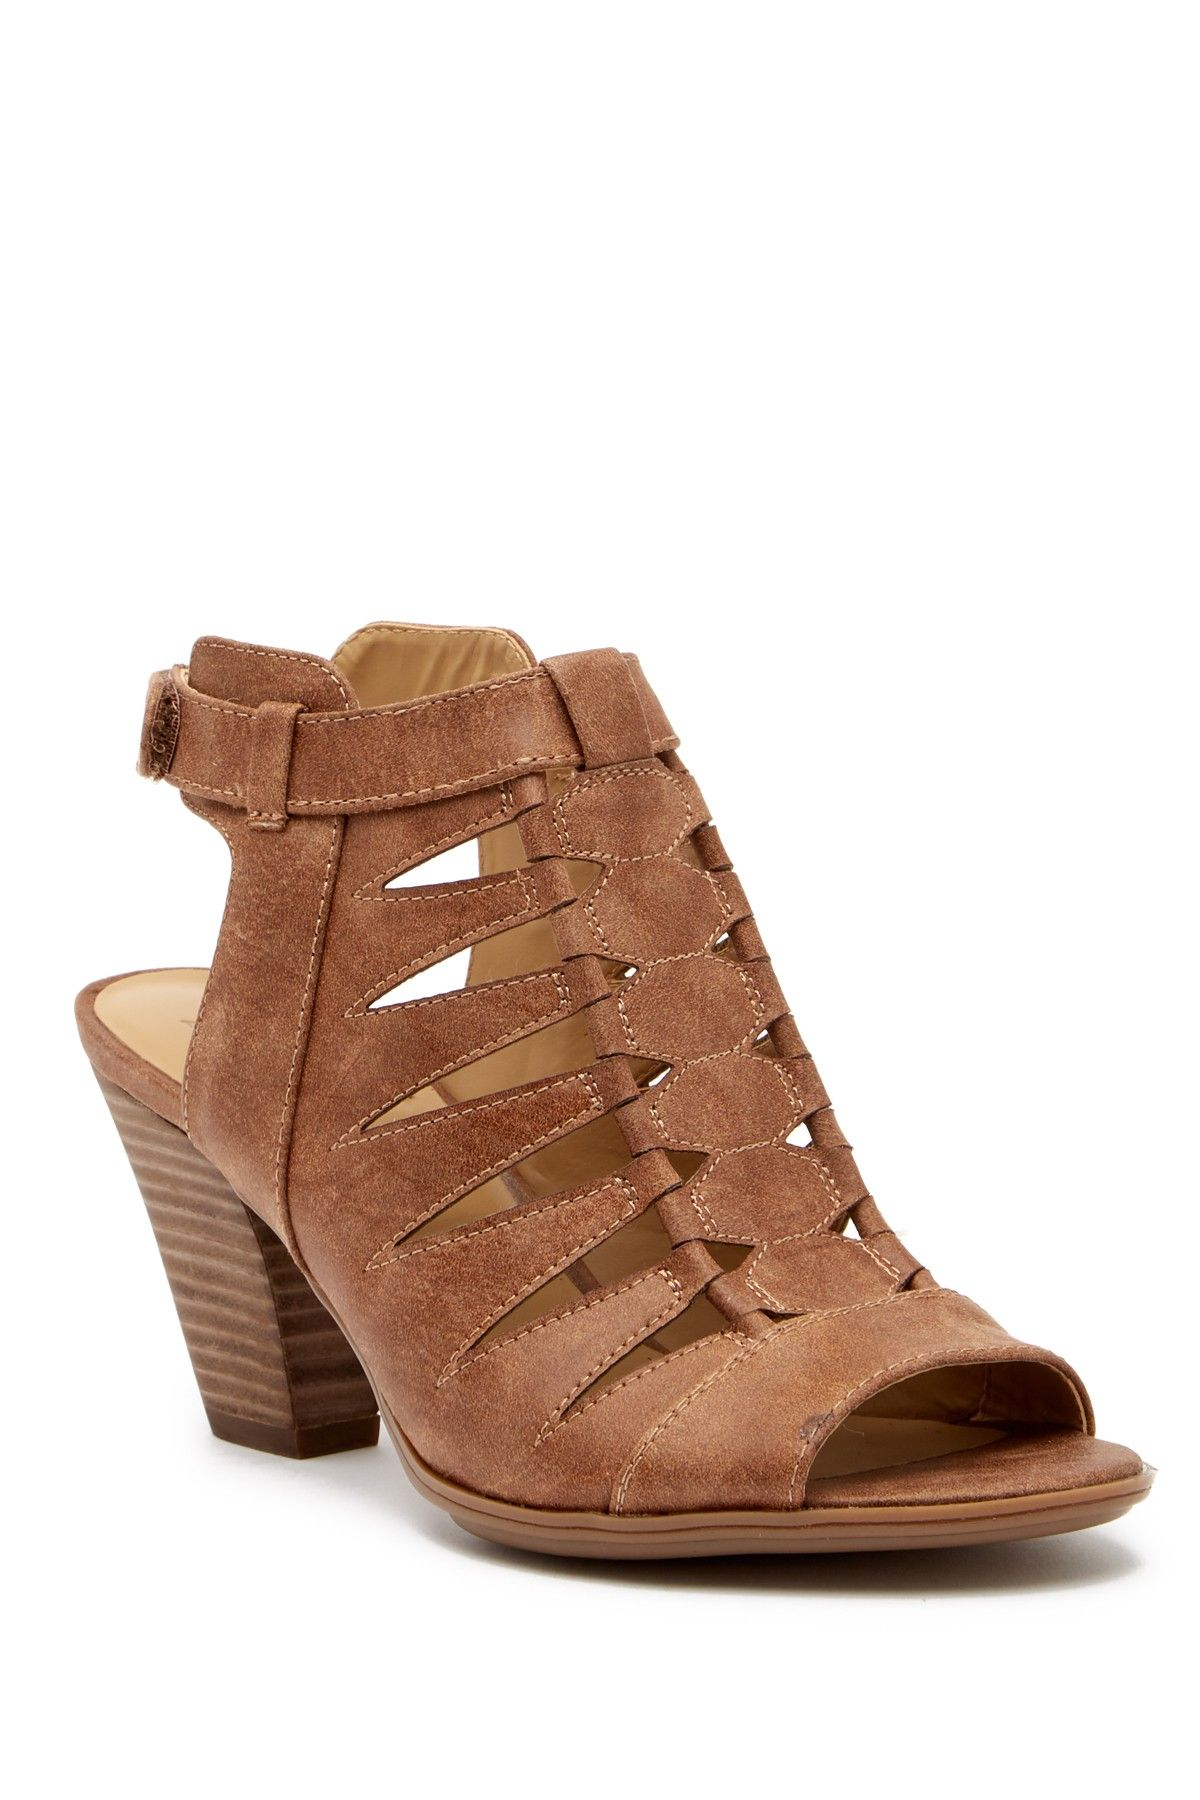 04d70f324009 Naturalizer Talan Cutout Stacked Heel Sandal in Latte